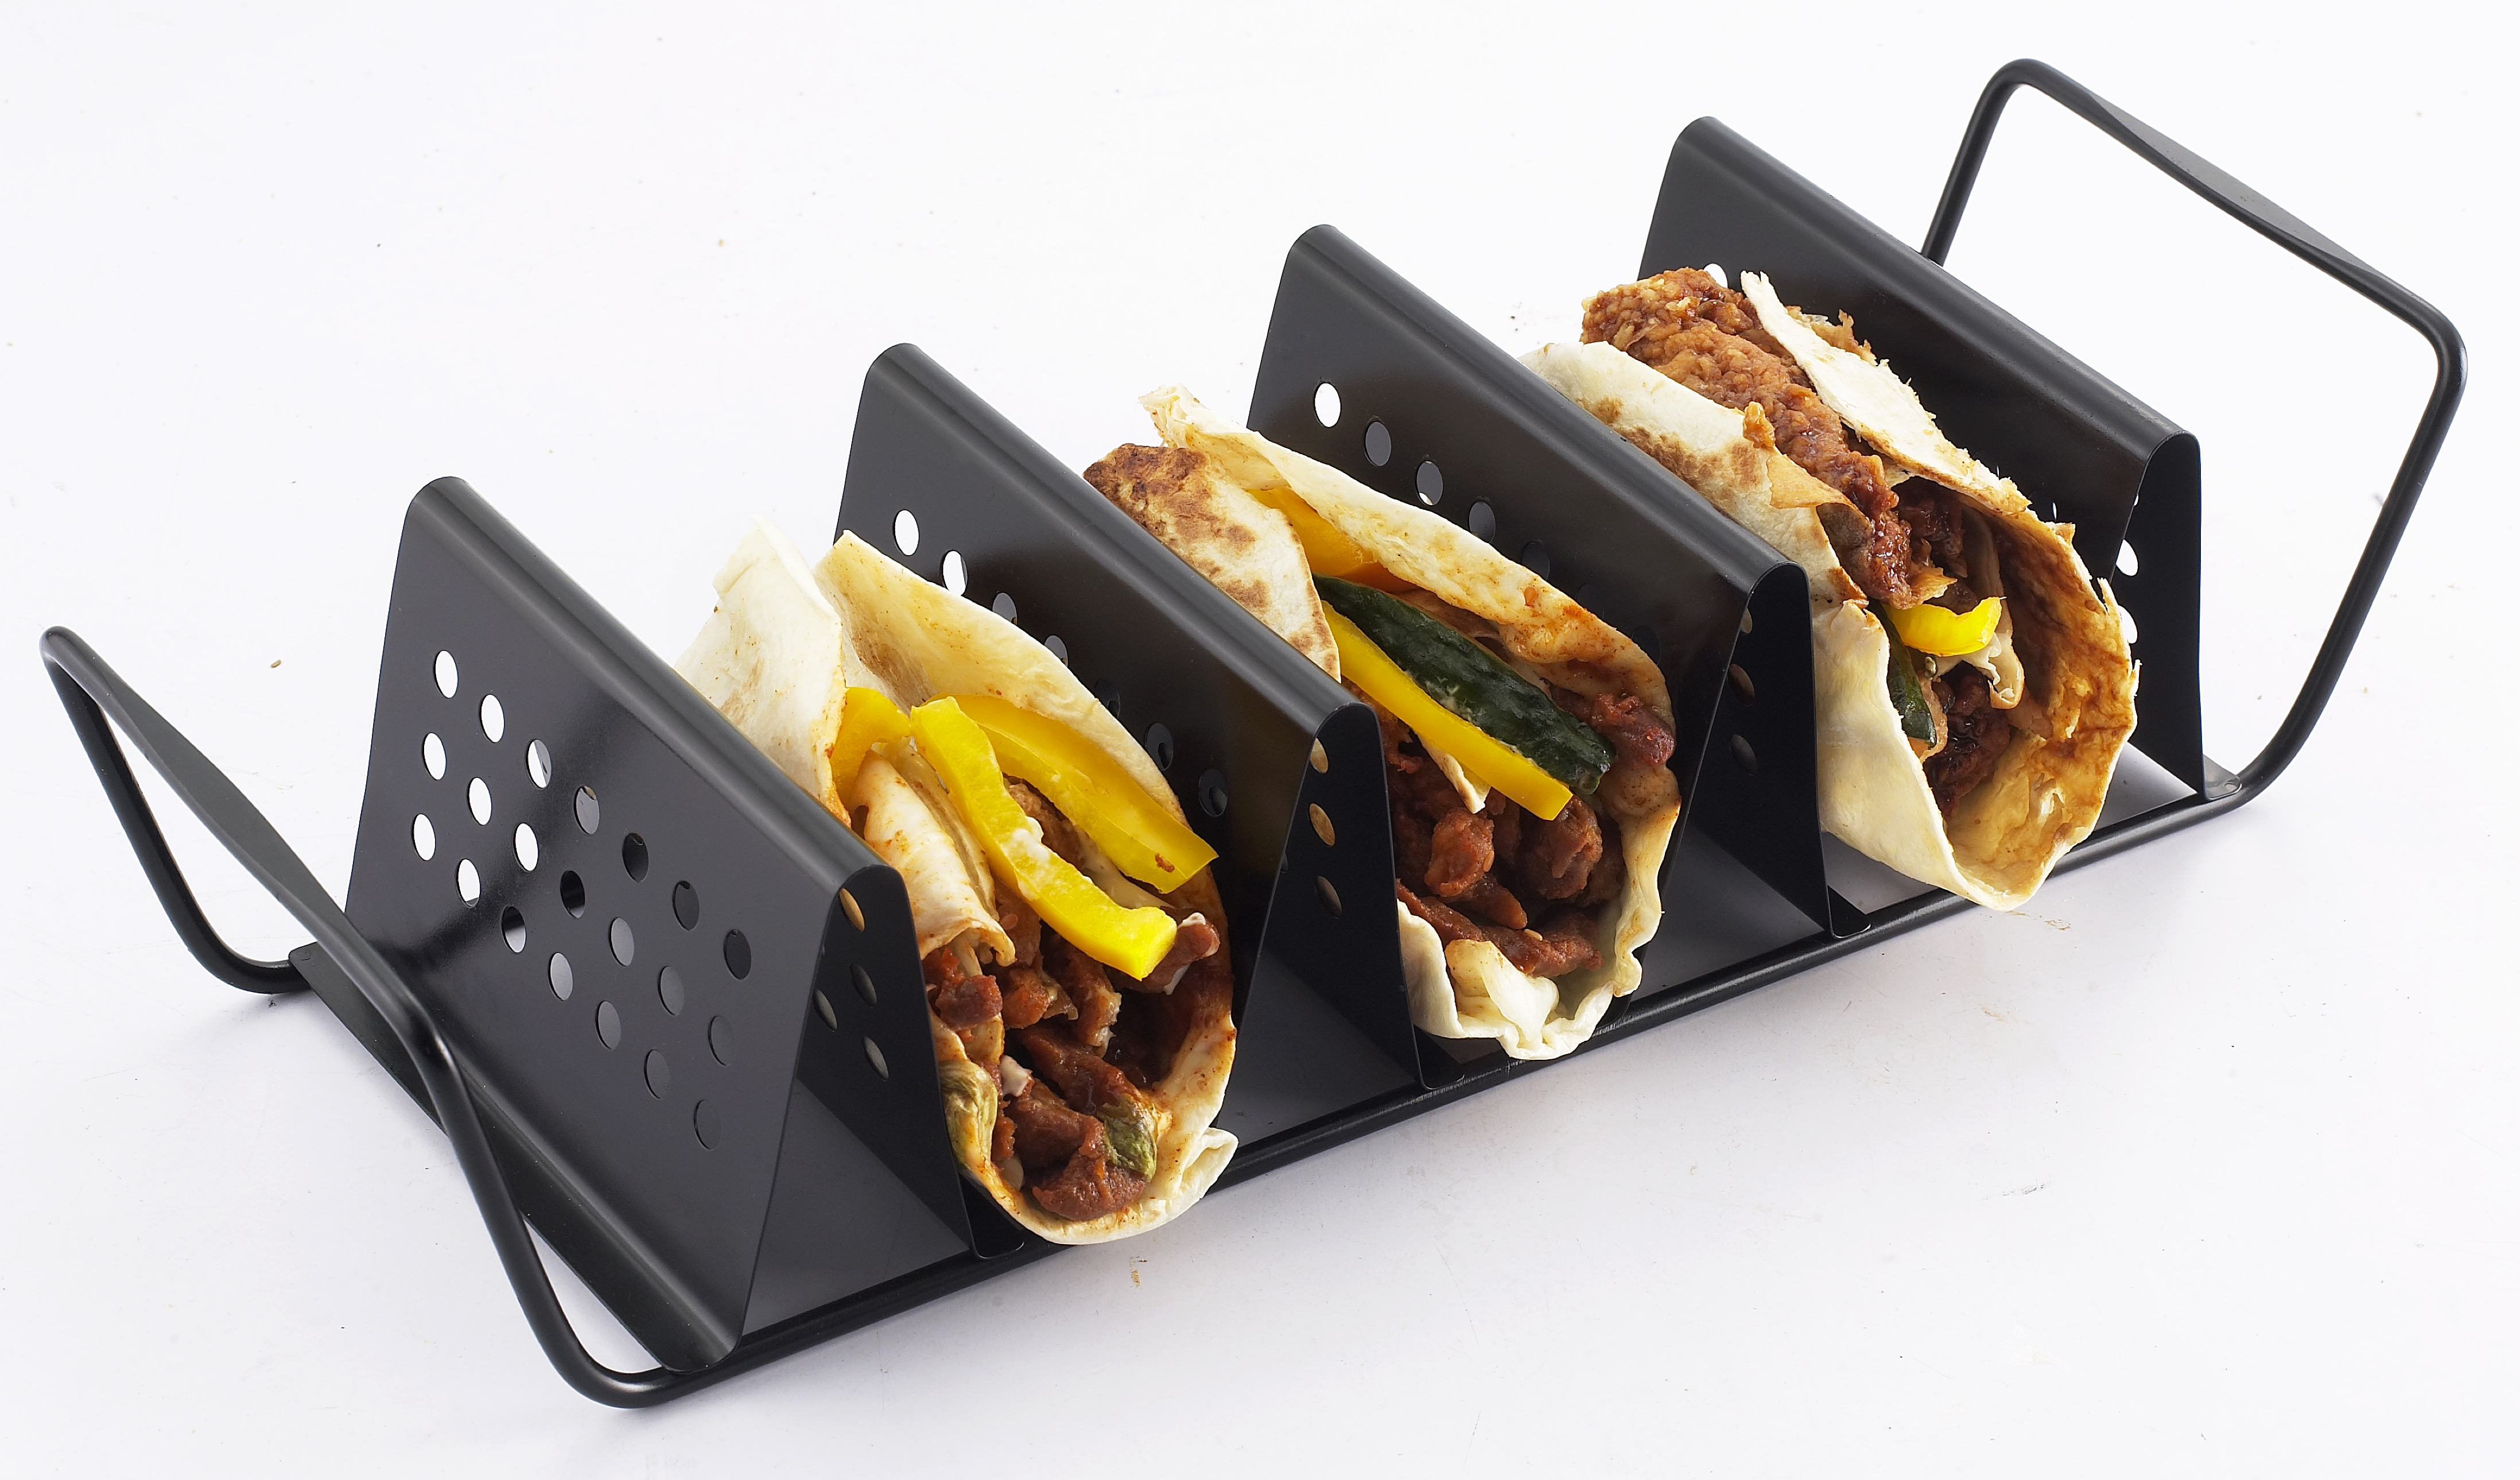 ZenUrban 870015 3-Taco Cooking Grill Rack, Nonstick